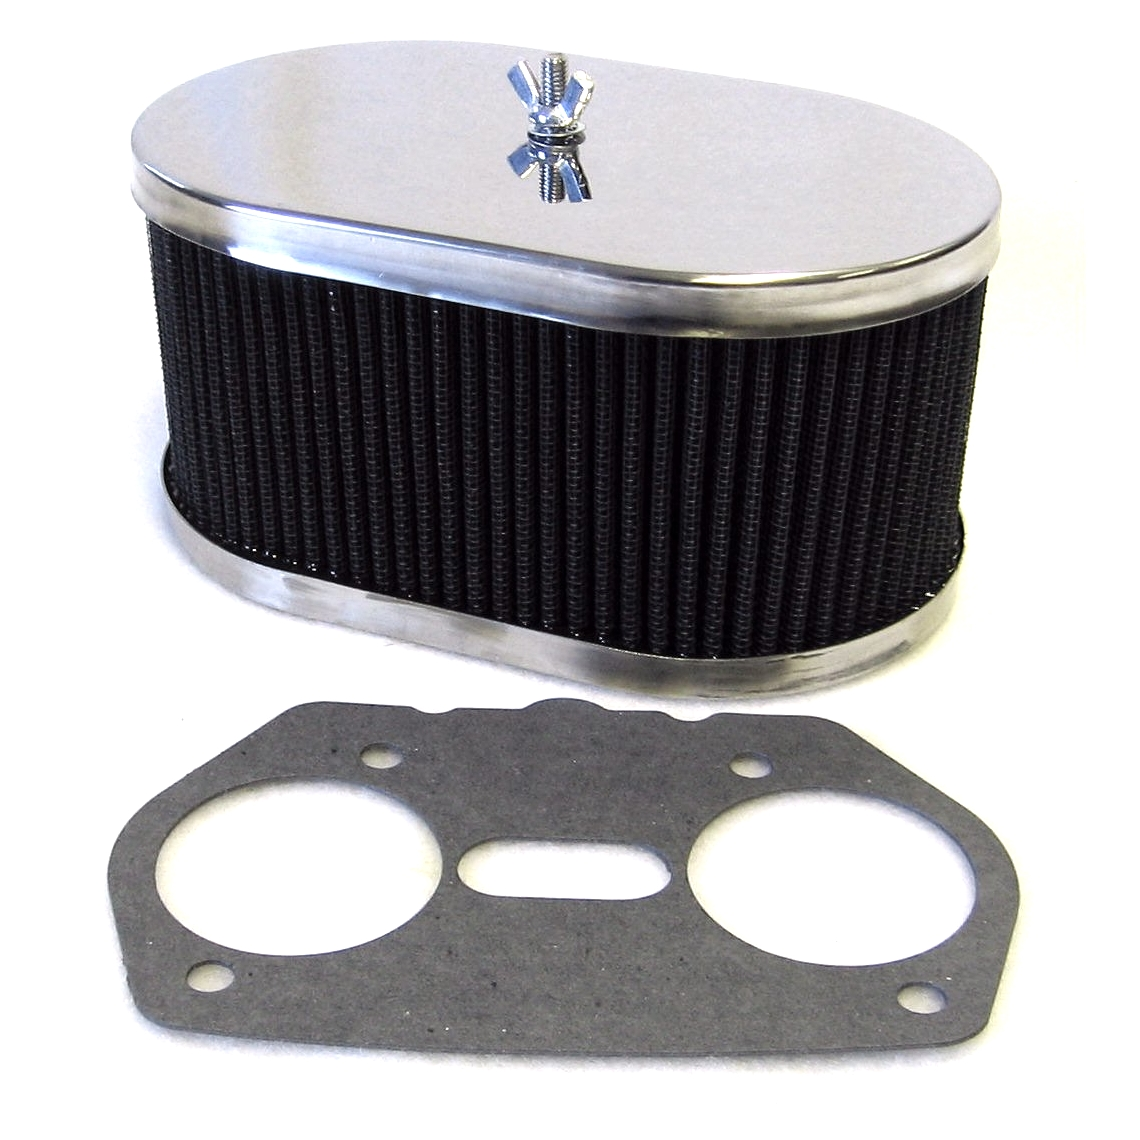 WEBER IDF / DELLORTO DRLA 36 / 40 / 44 / 45 / 48 CARBURETTOR 1x AIR FILTER KIT